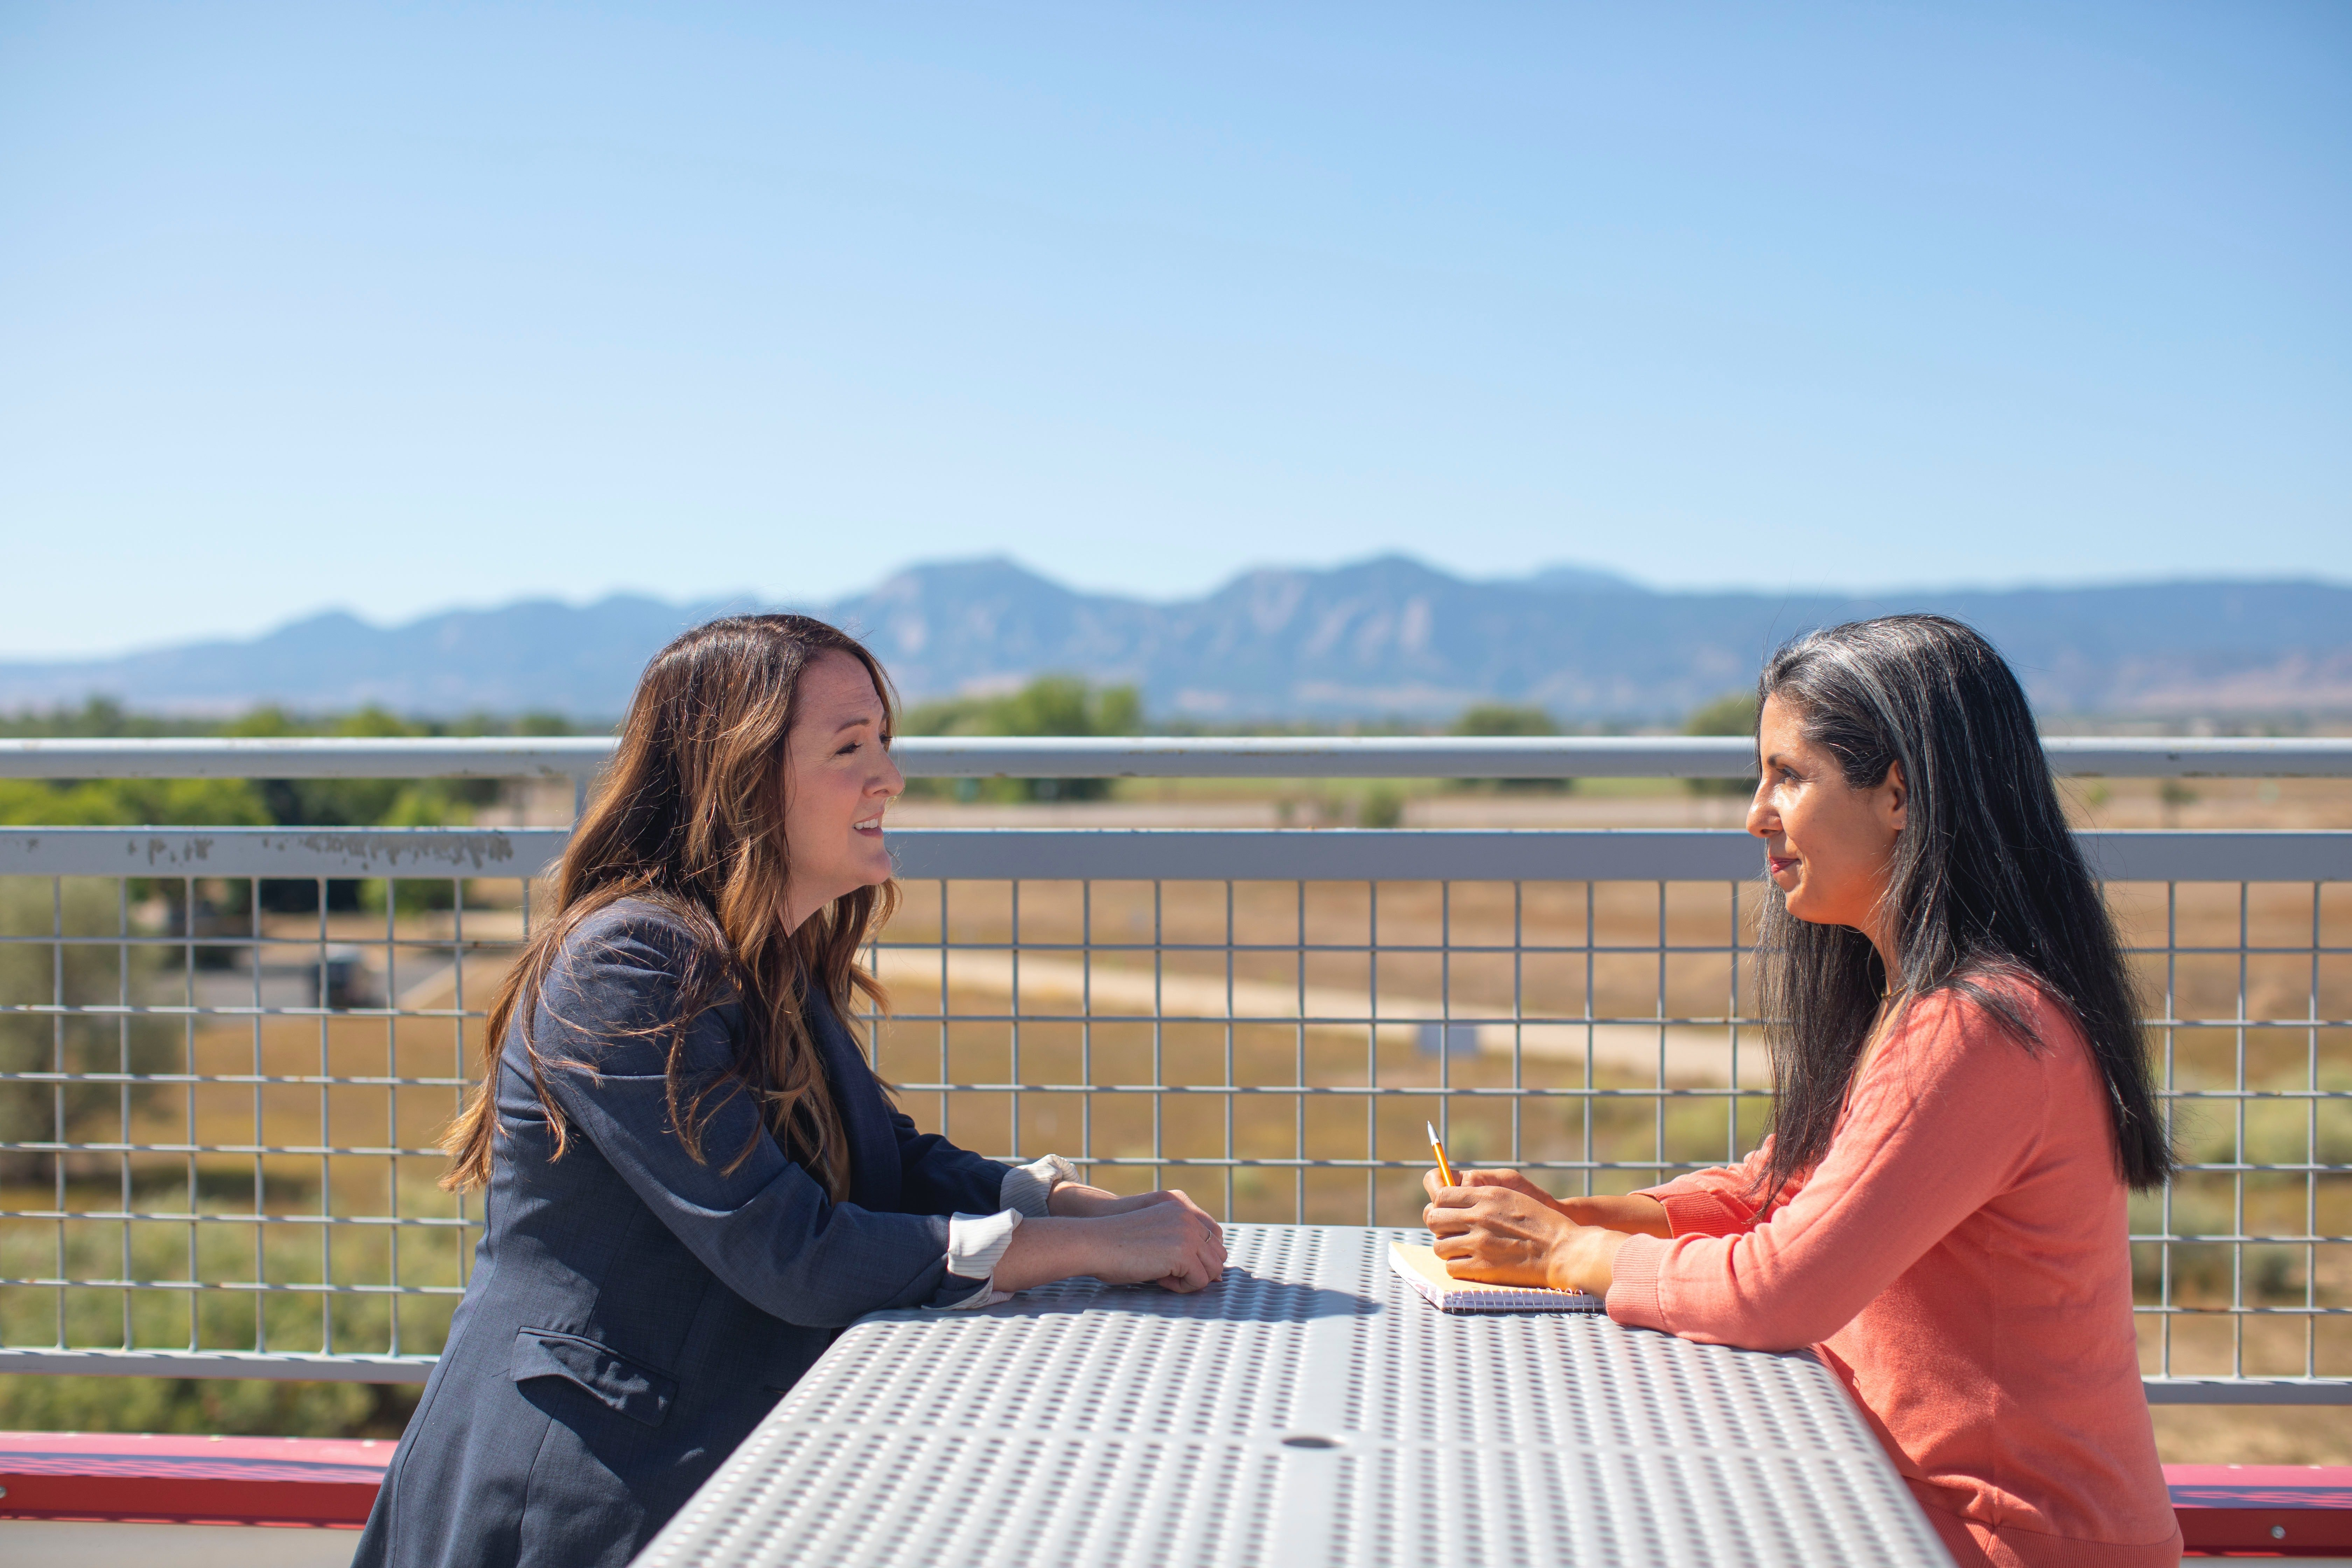 Two women sitting on a bench | Source: Unsplash / LinkedIn Sales Solutions